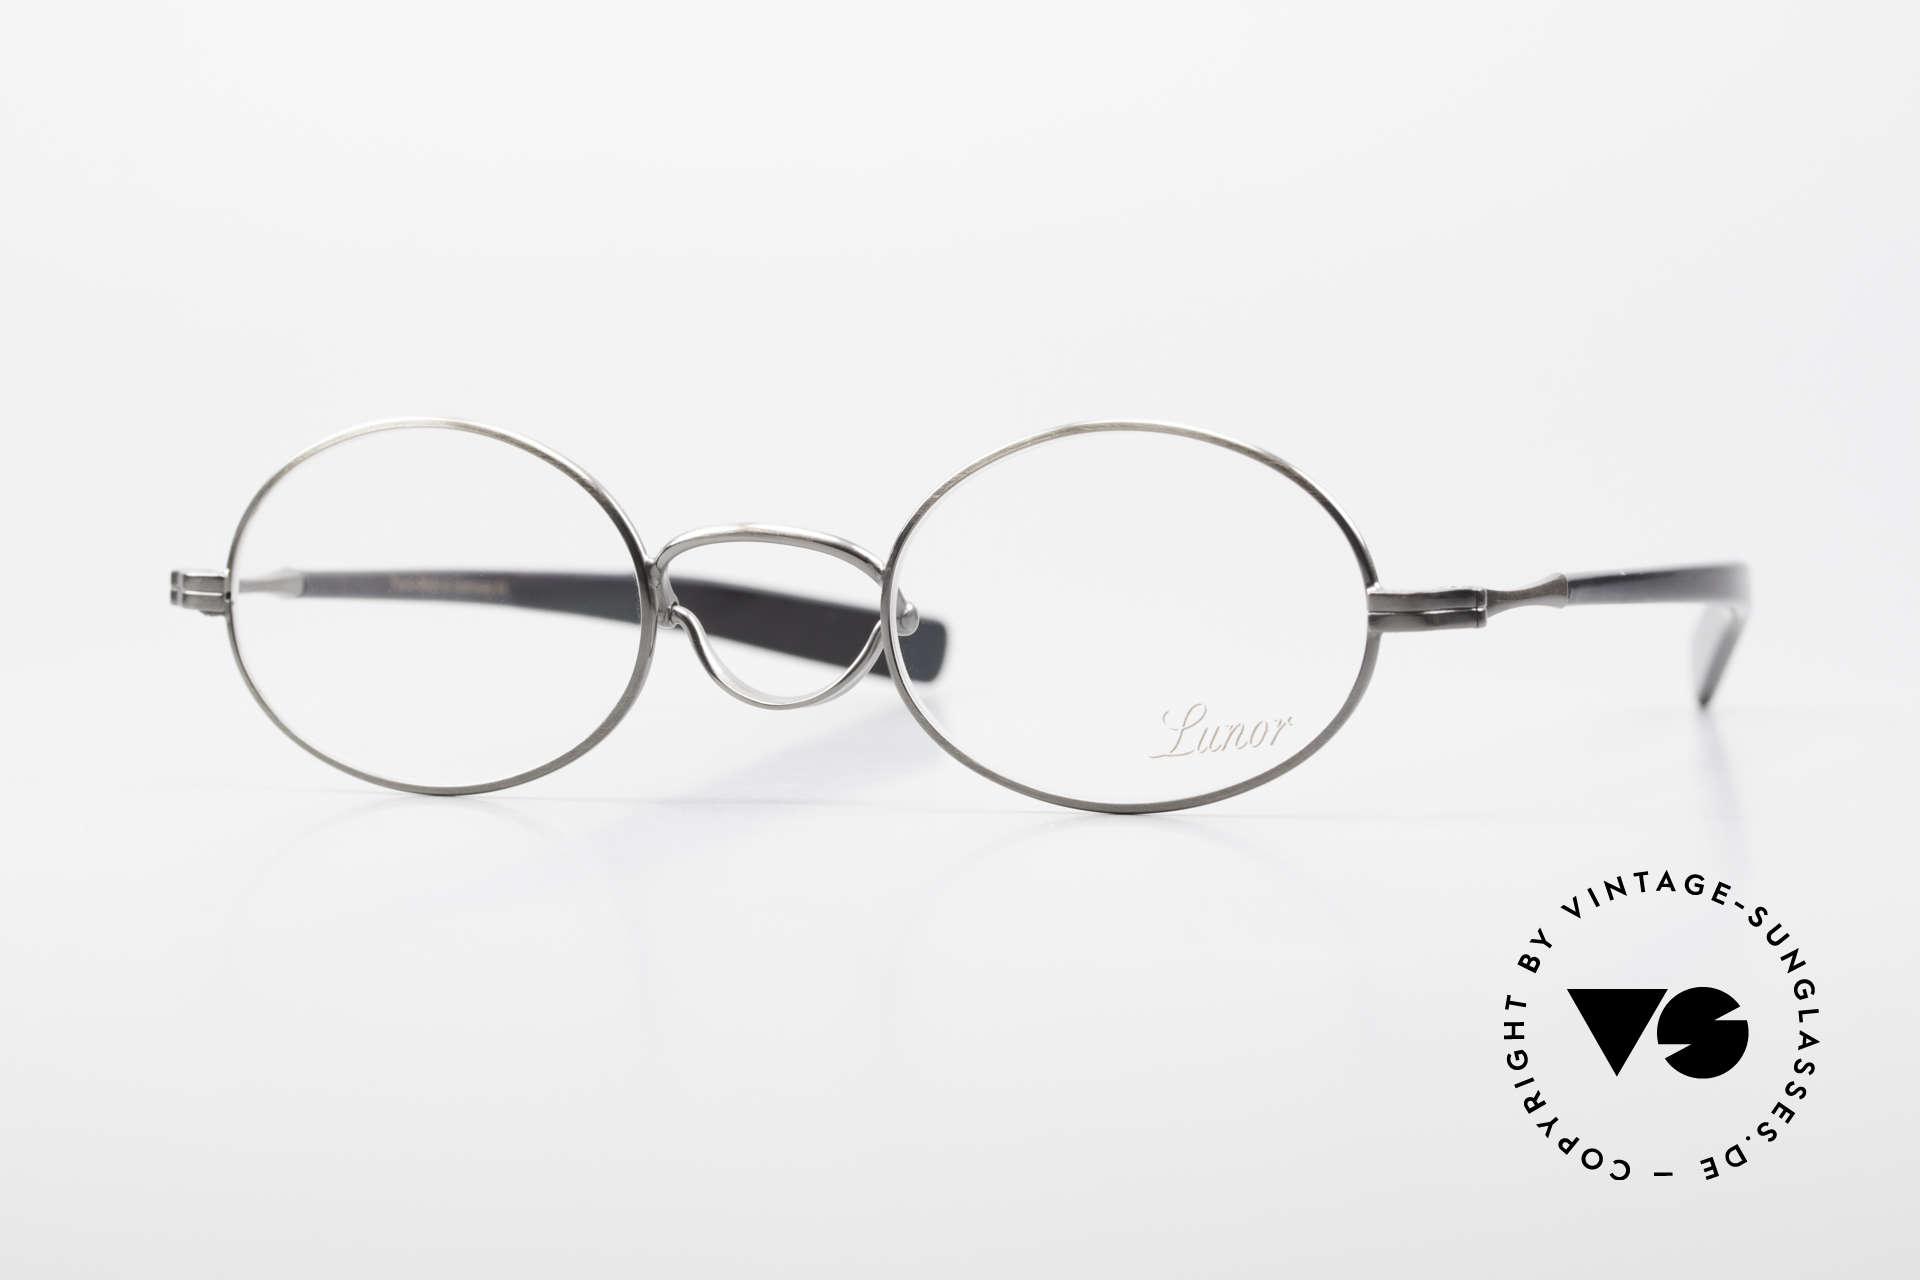 """Lunor Swing A 33 Oval Swing Bridge Antique Silver AS, rare, old VINTAGE LUNOR glasses of the Swing """"A"""" series, Made for Men and Women"""